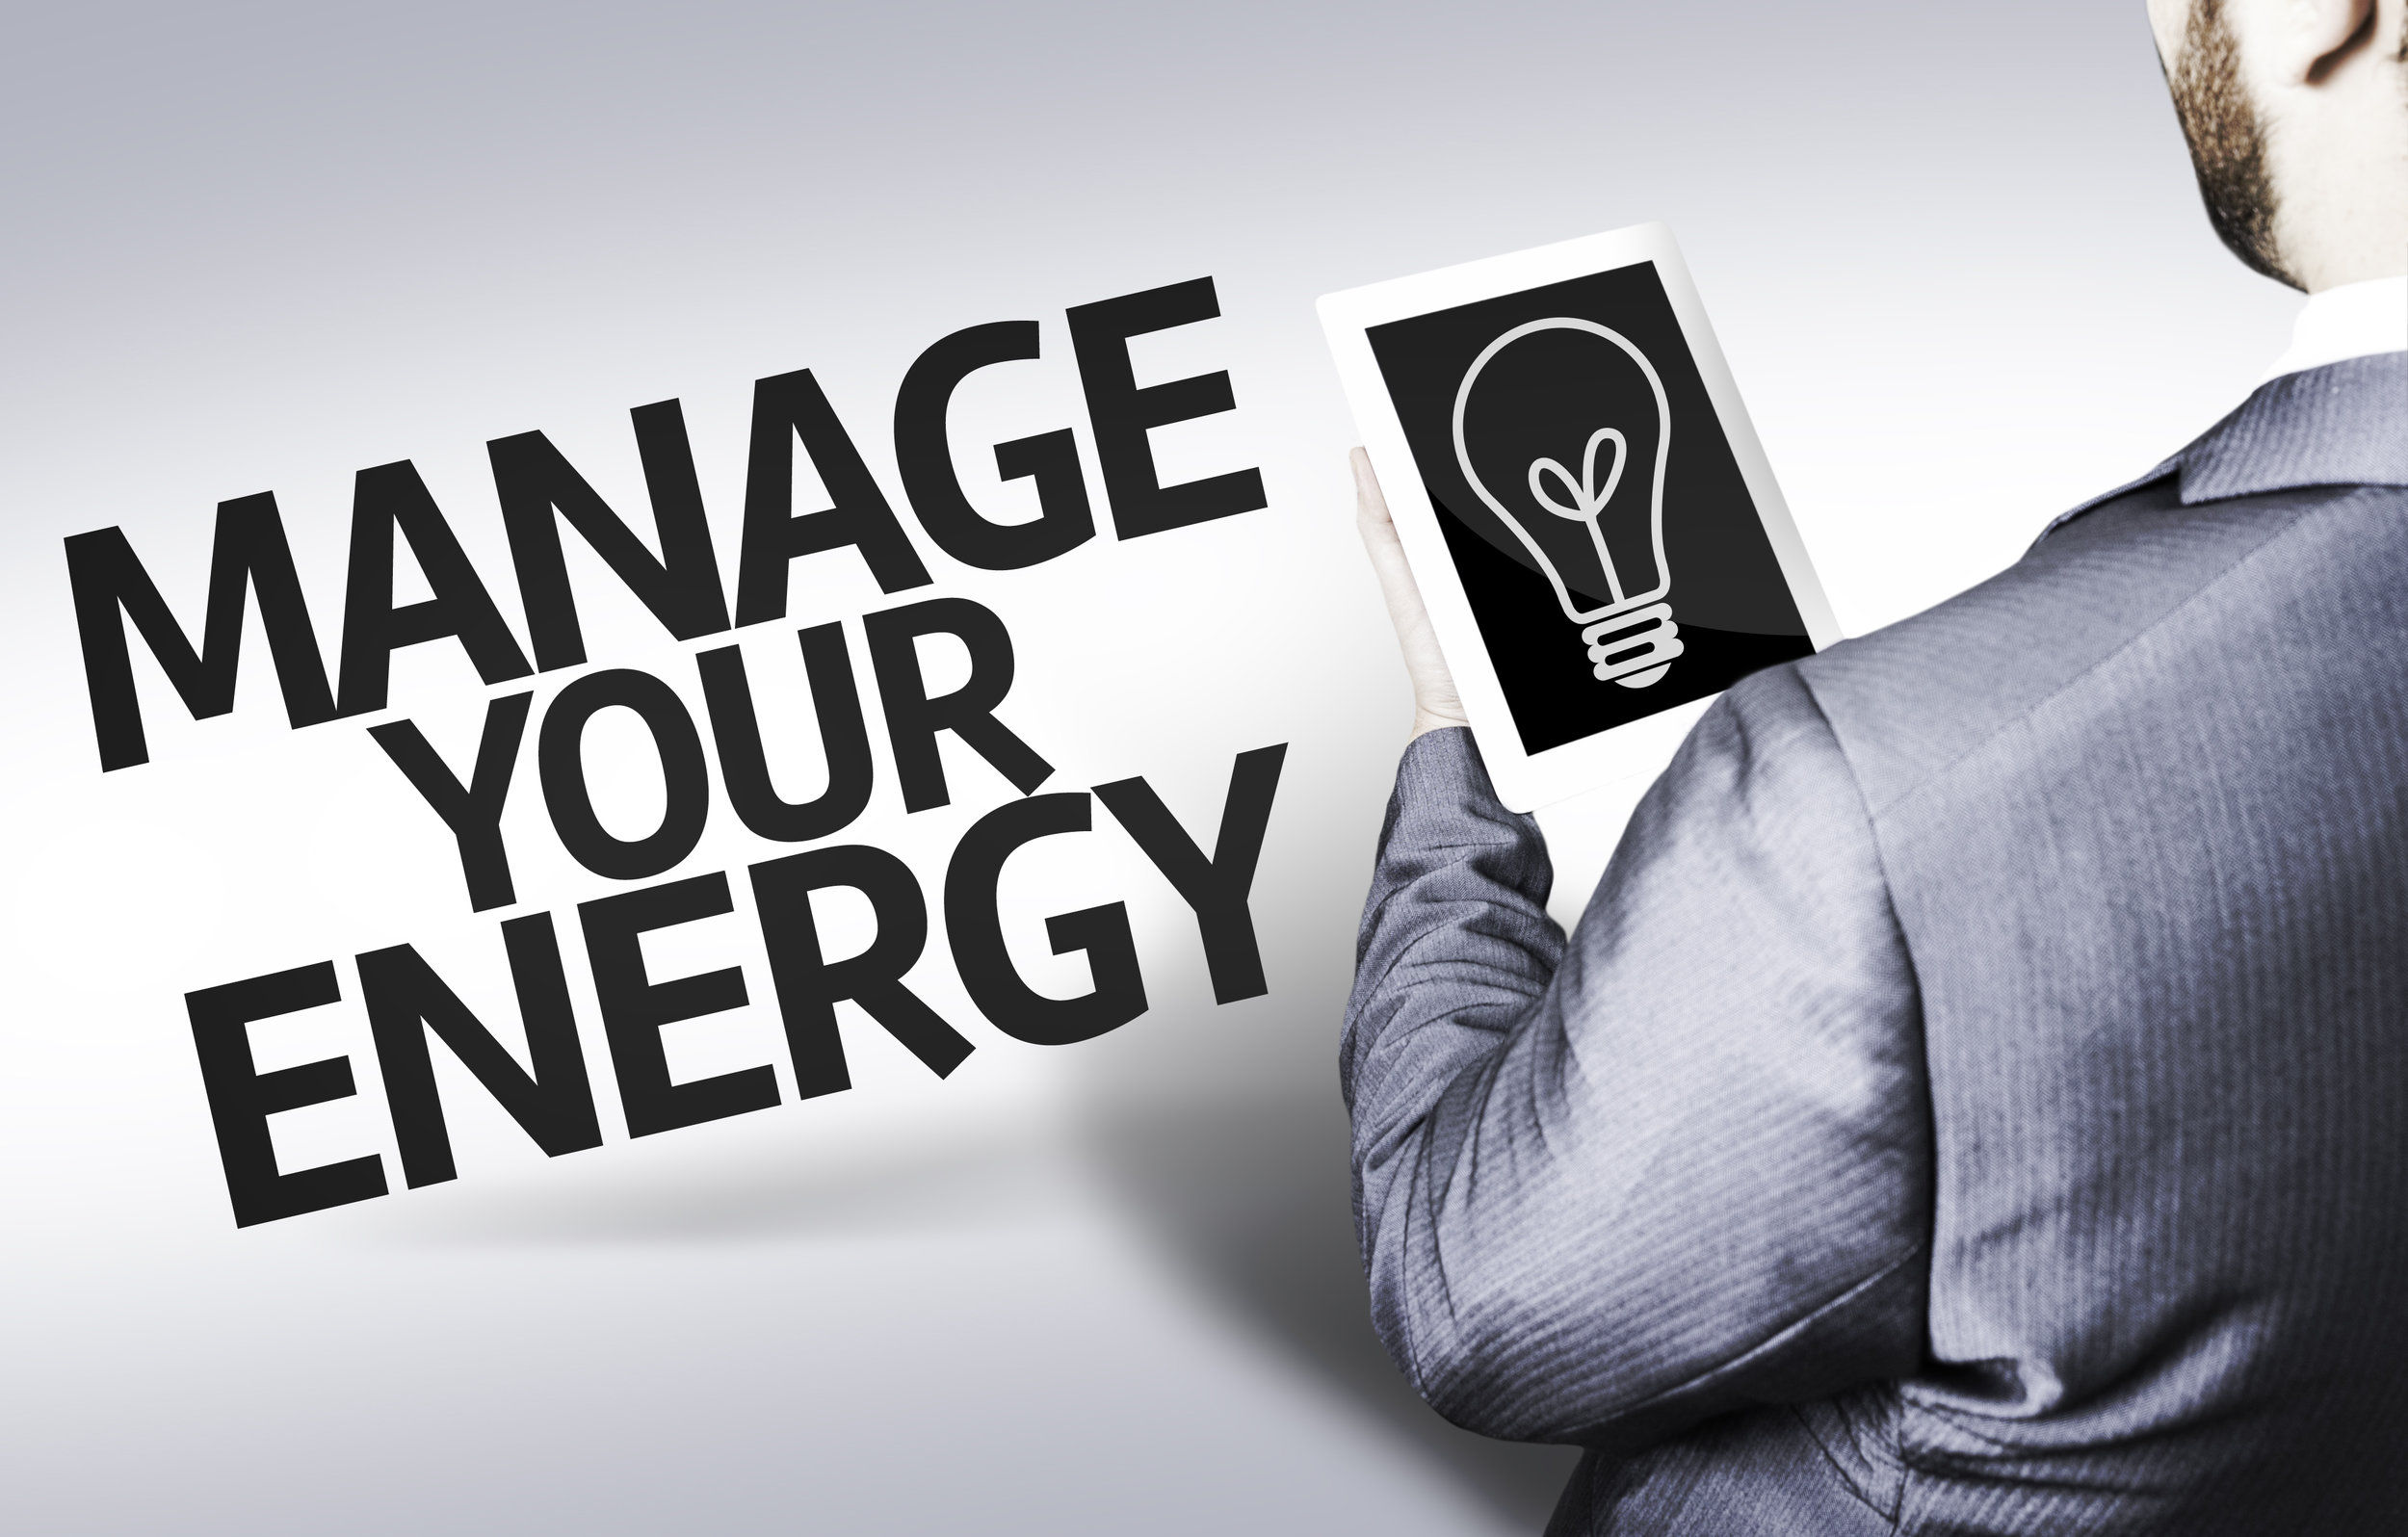 Manage Your Energy - We have loaded our latest article on how to Manage your Energy. As power bills rise it is timely to ensure you are getting the maximum value for your energy dollar. This article will assist you in looking at ways to keep more money in your pocket!